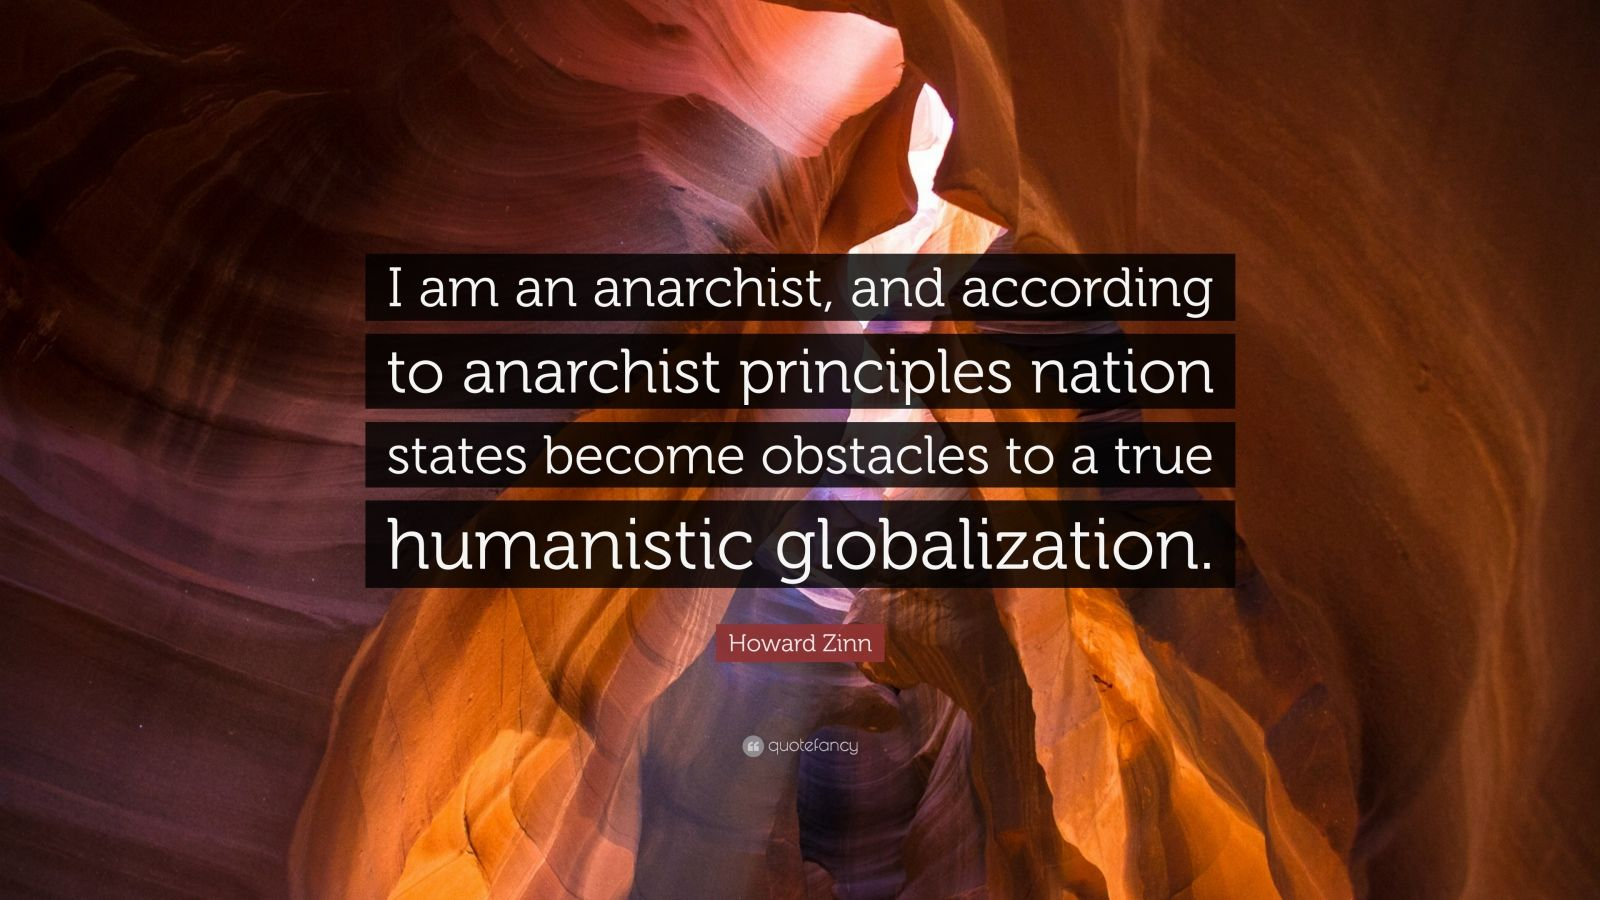 """Howard Zinn Quote: """"I am an anarchist, and according to anarchist principles nation states become obstacles to a true humanistic globalization."""""""